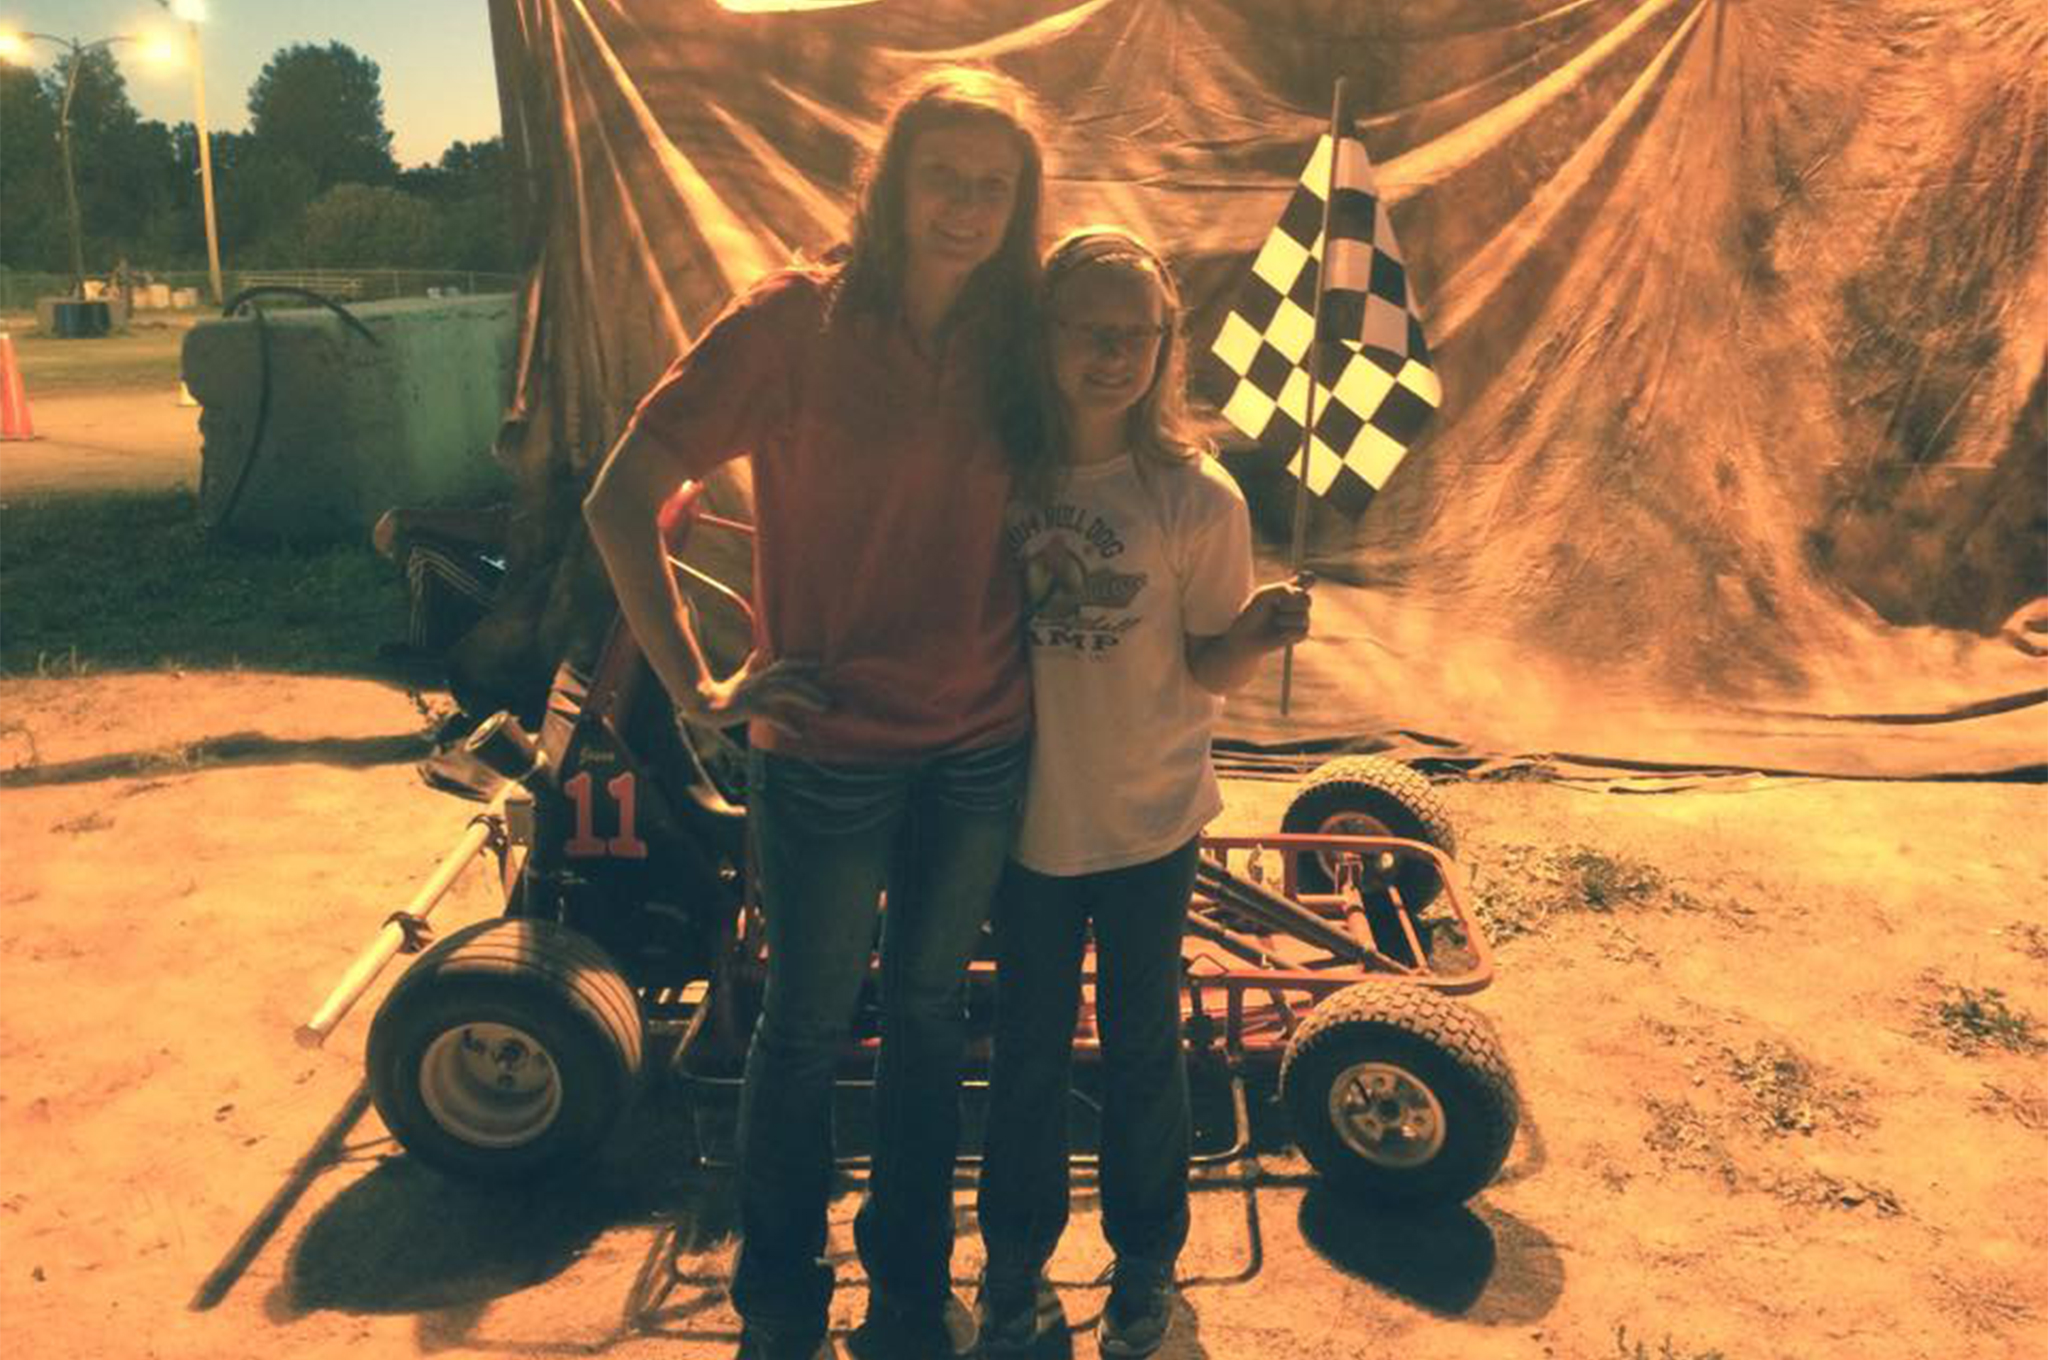 While she points to Alan Kulwicki as one of her role models, Reagan has become one herself—celebrating a victory with this young Oshkosh (Wisconsin) Kids Kart Club racer.